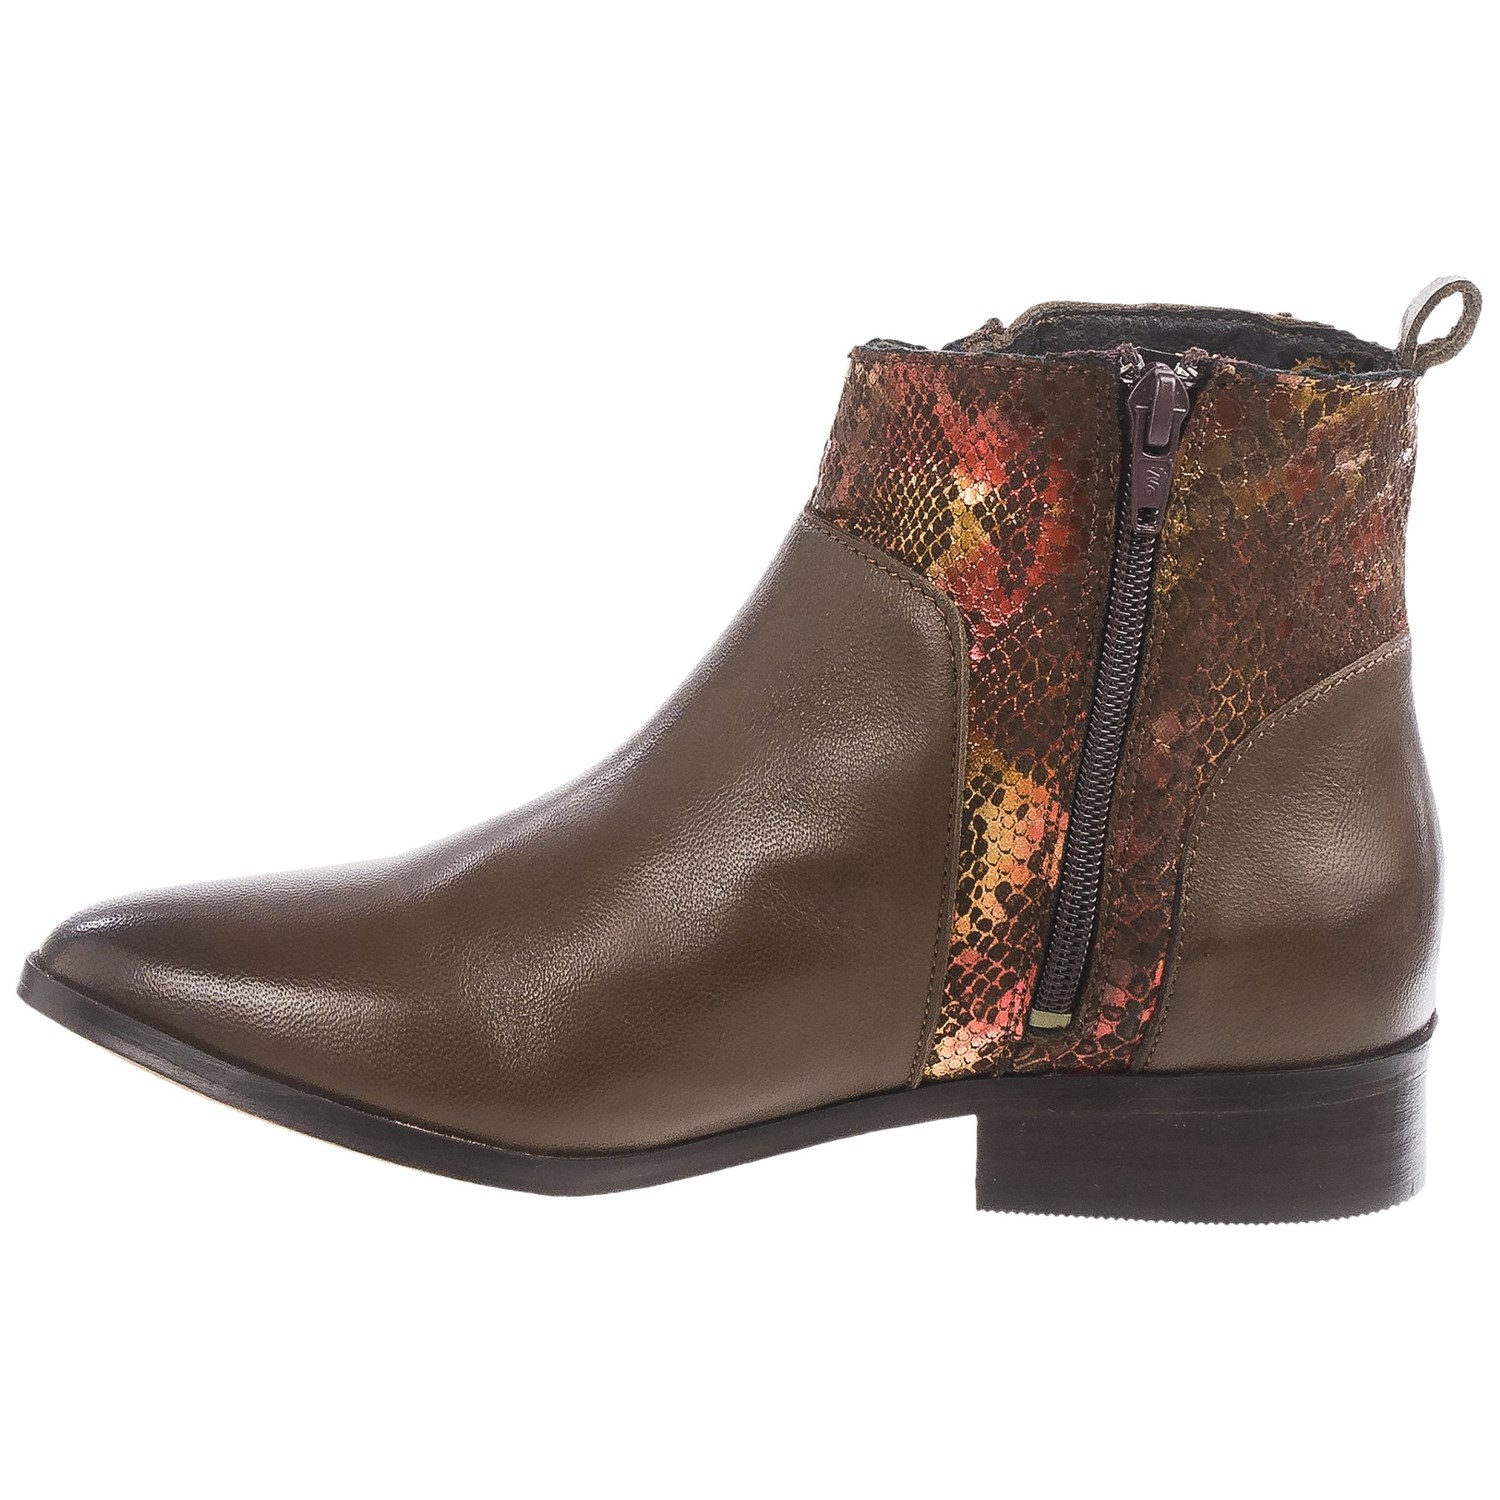 Eric Michael Modena Ankle Boots (For Women) - Save 88%